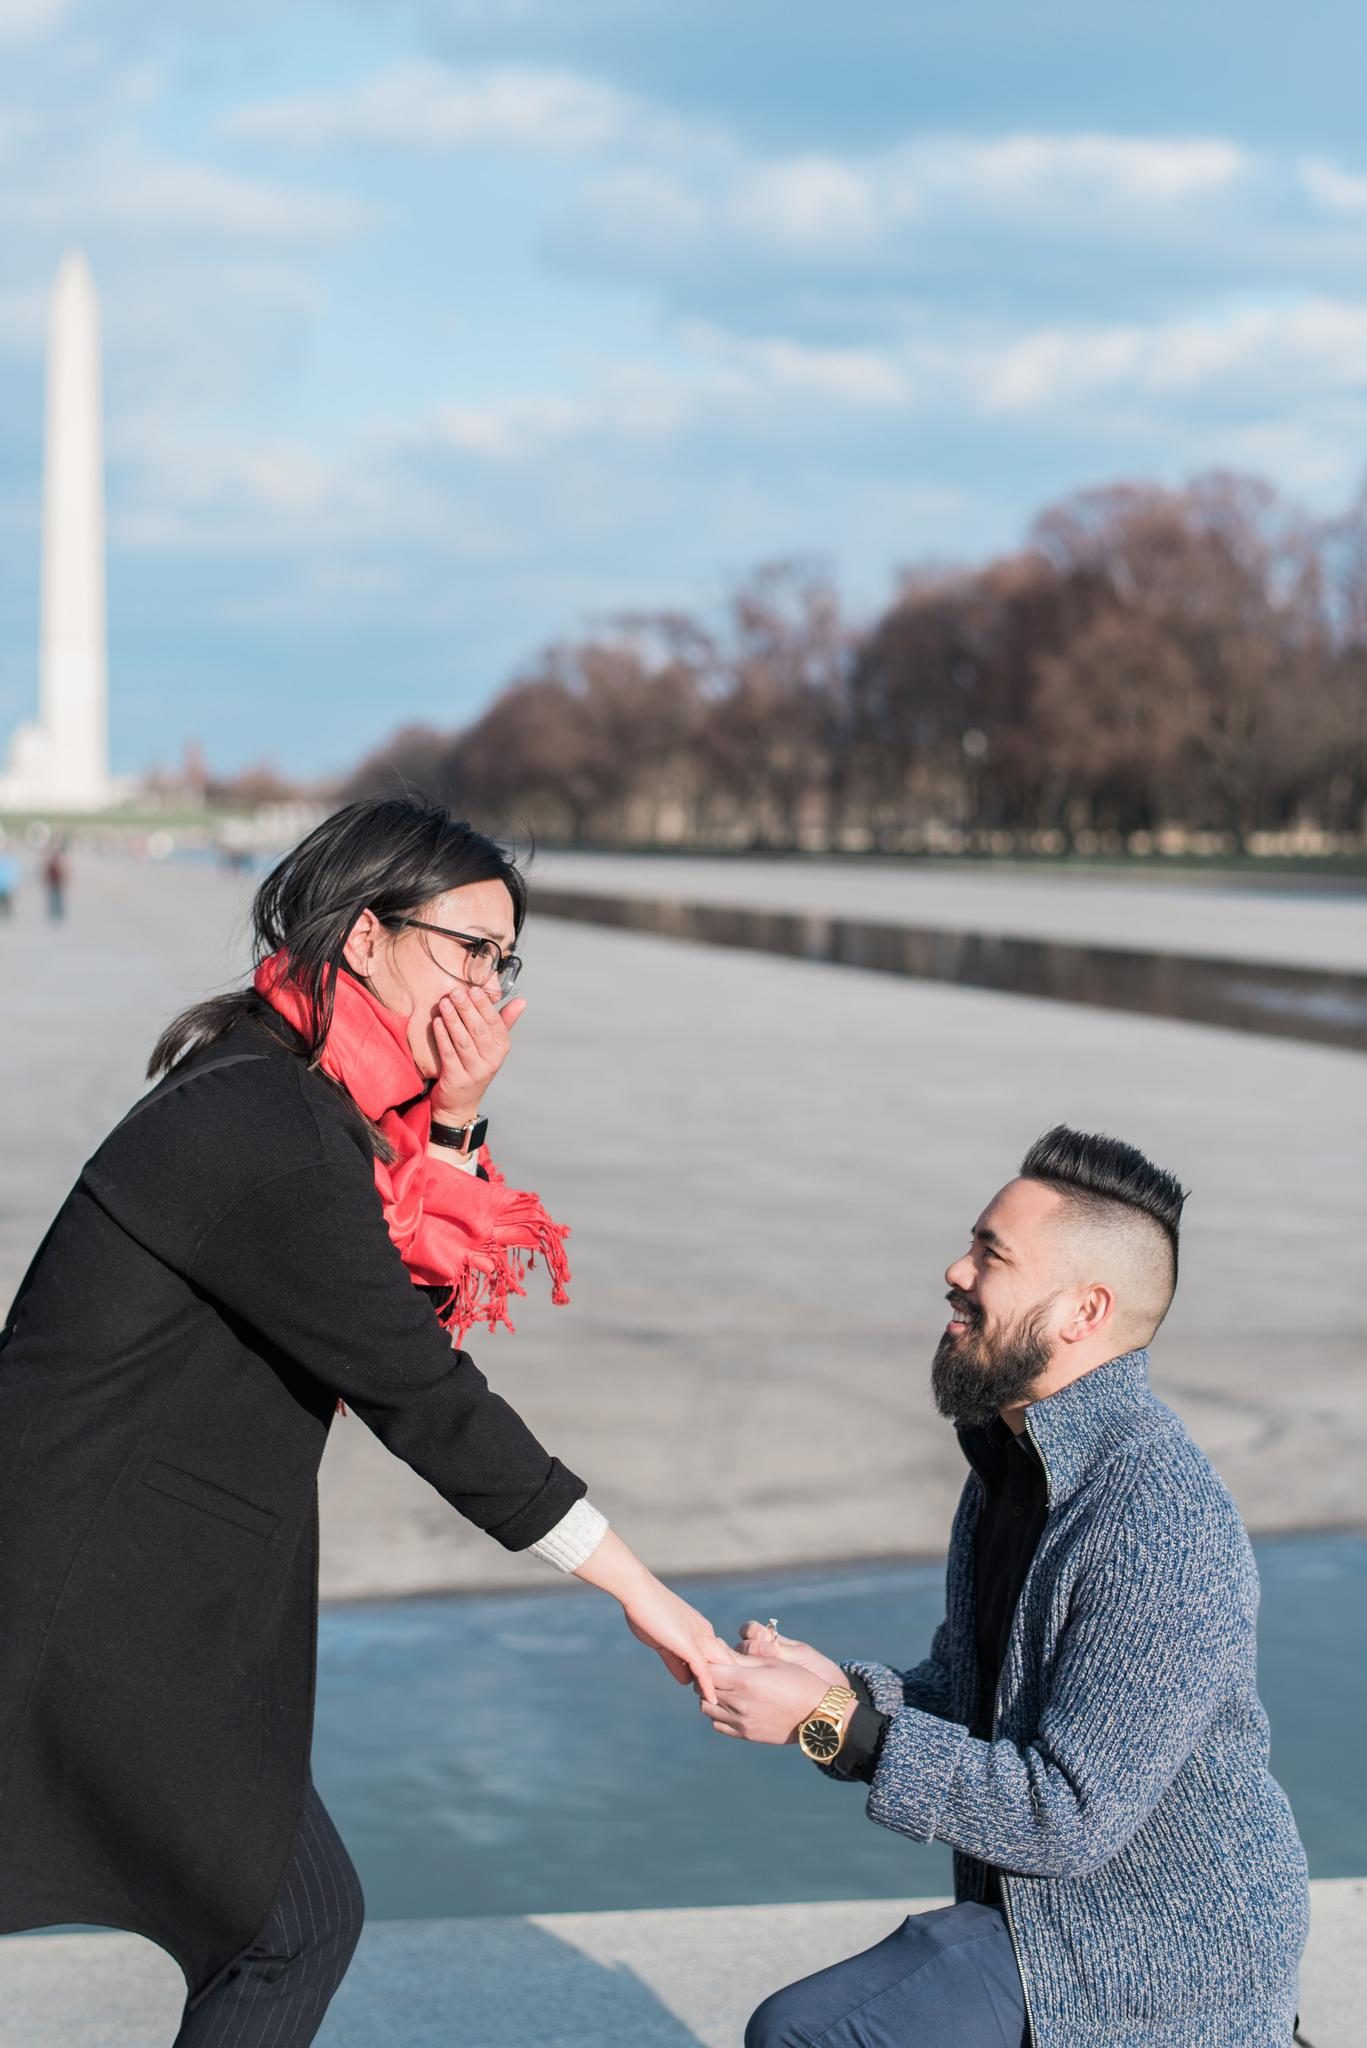 March 13, 2018 On a homecoming trip to Washington, DC  Ronald proposed